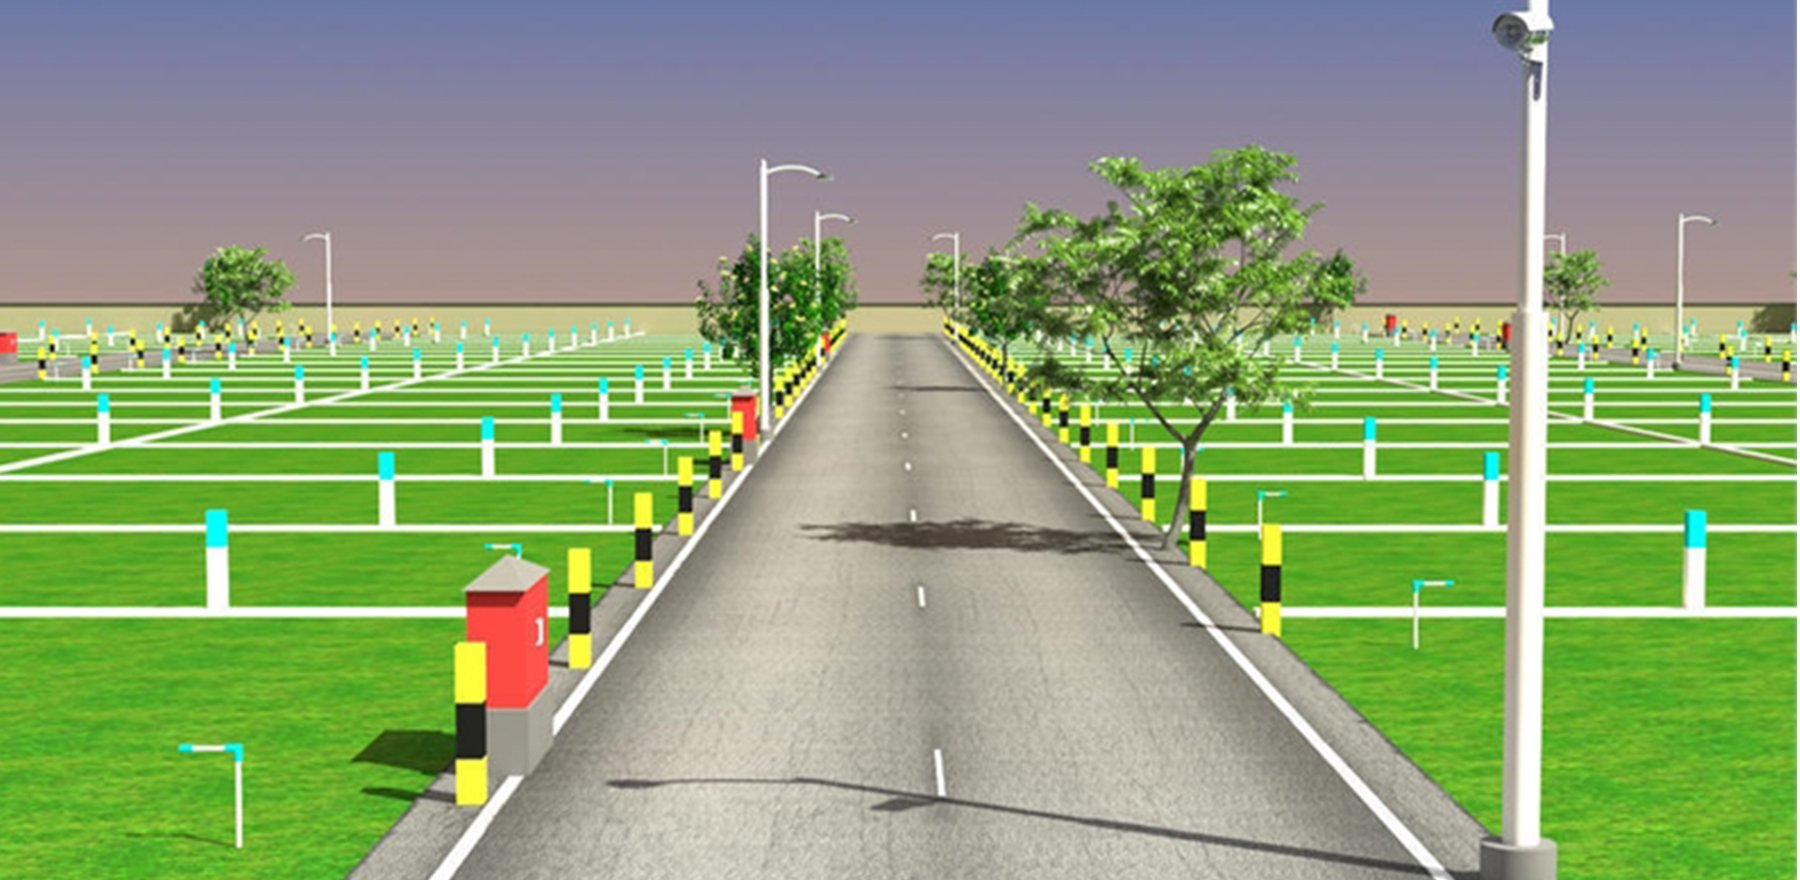 Available Land in West Bengal